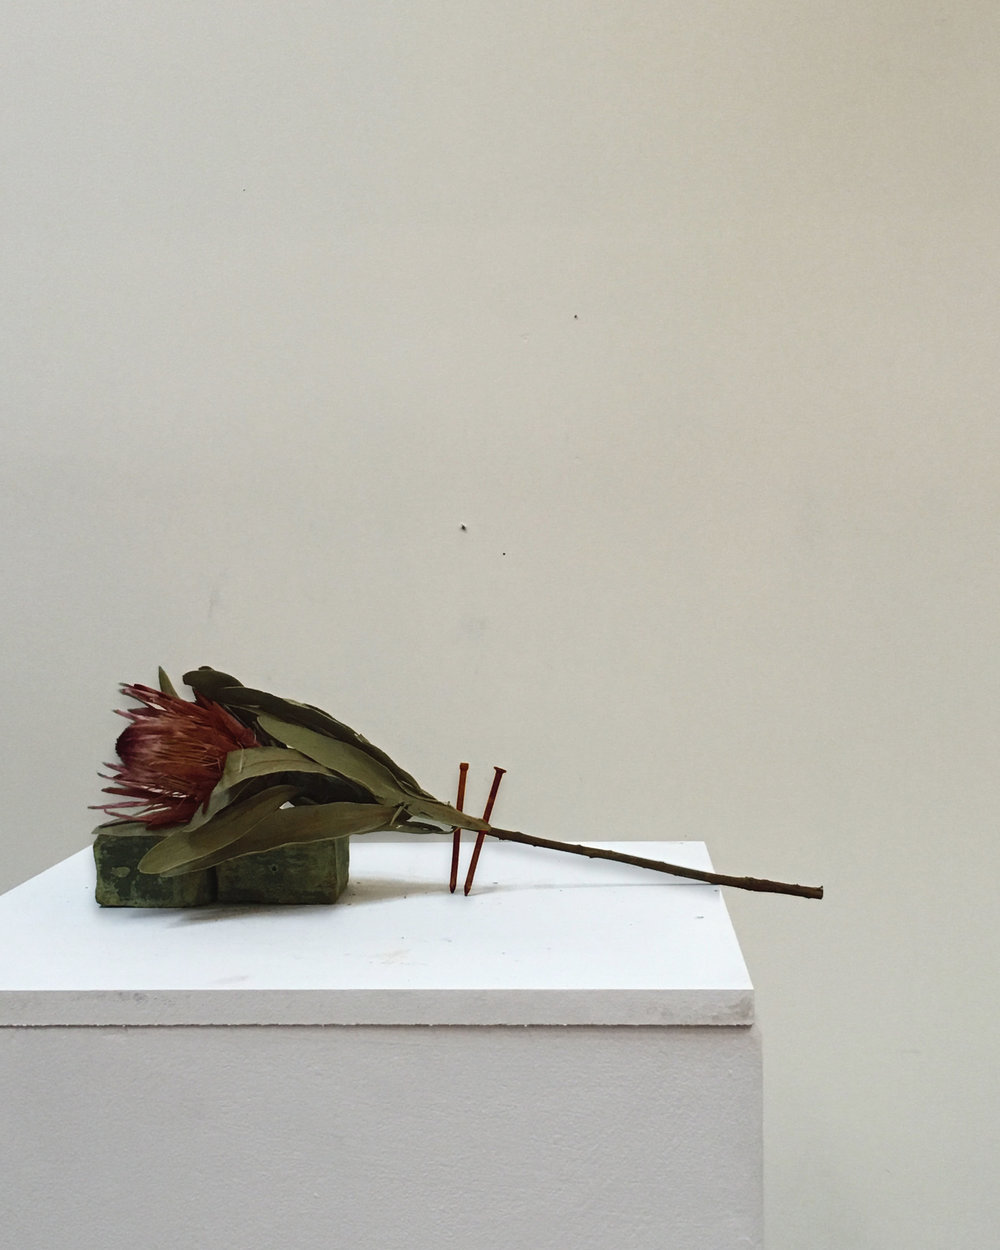 Through Lungs, protea, olive soap, rusted nails, 22 x 82 x 18 cm, 2016